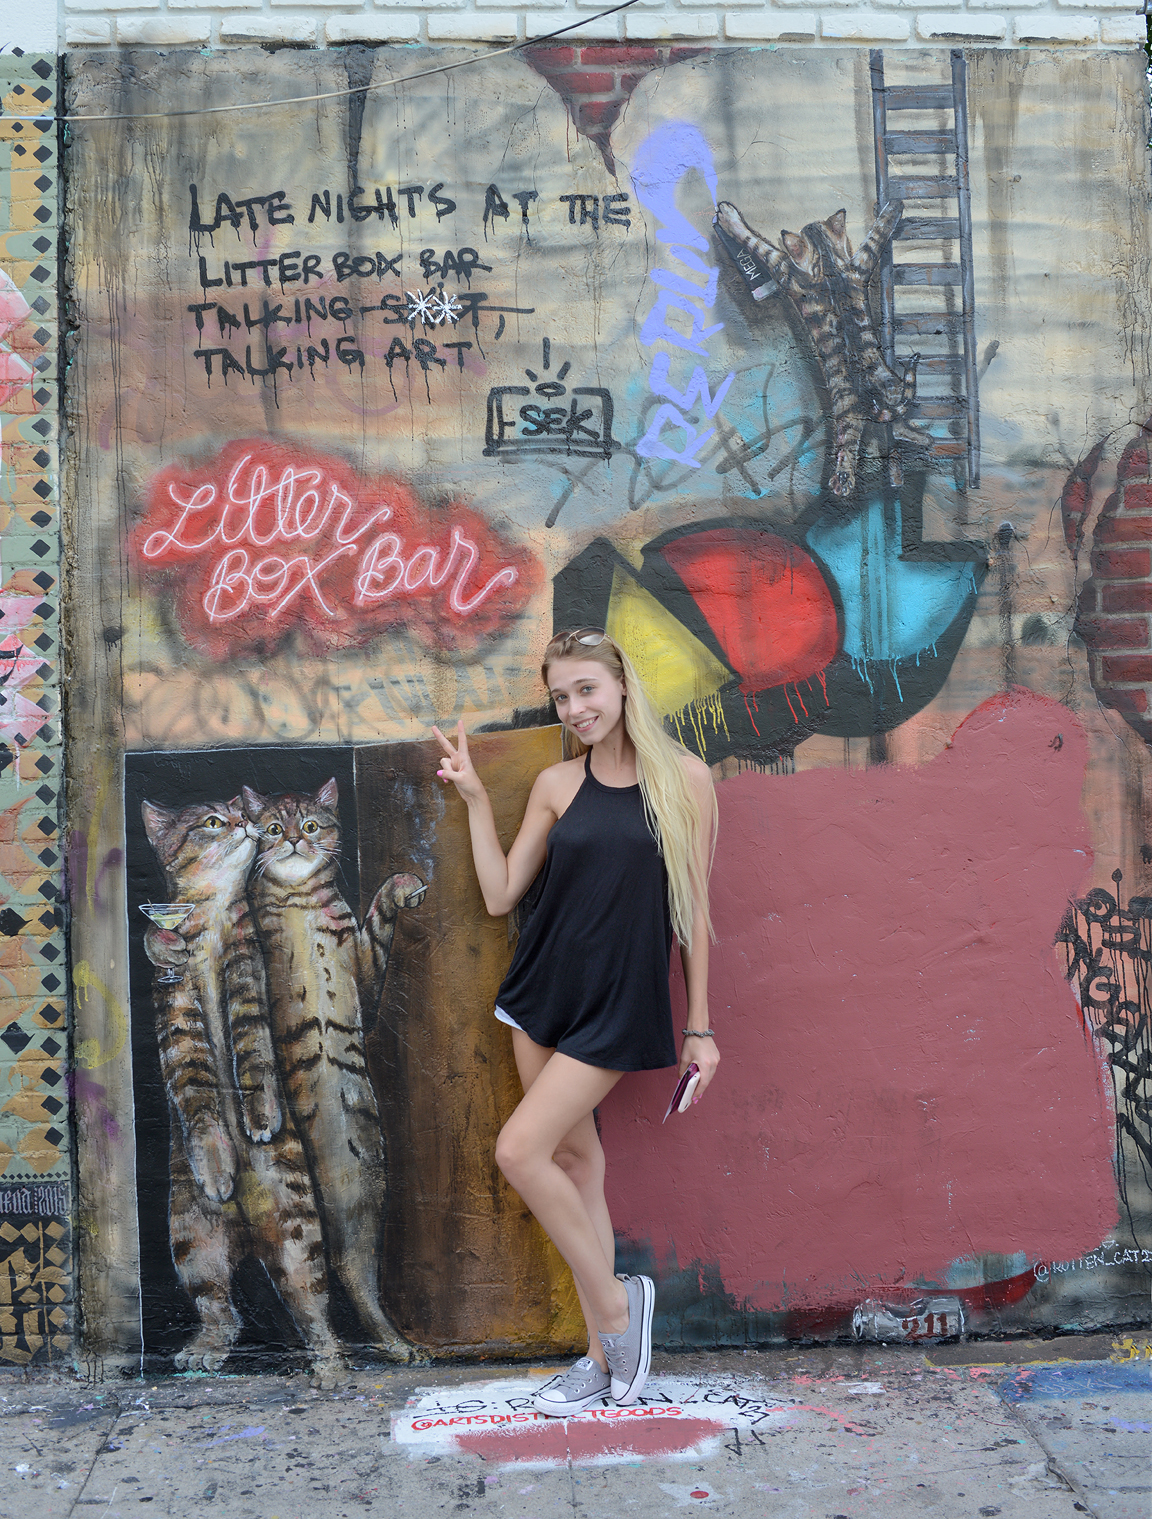 Photos with your favorite graffiti!